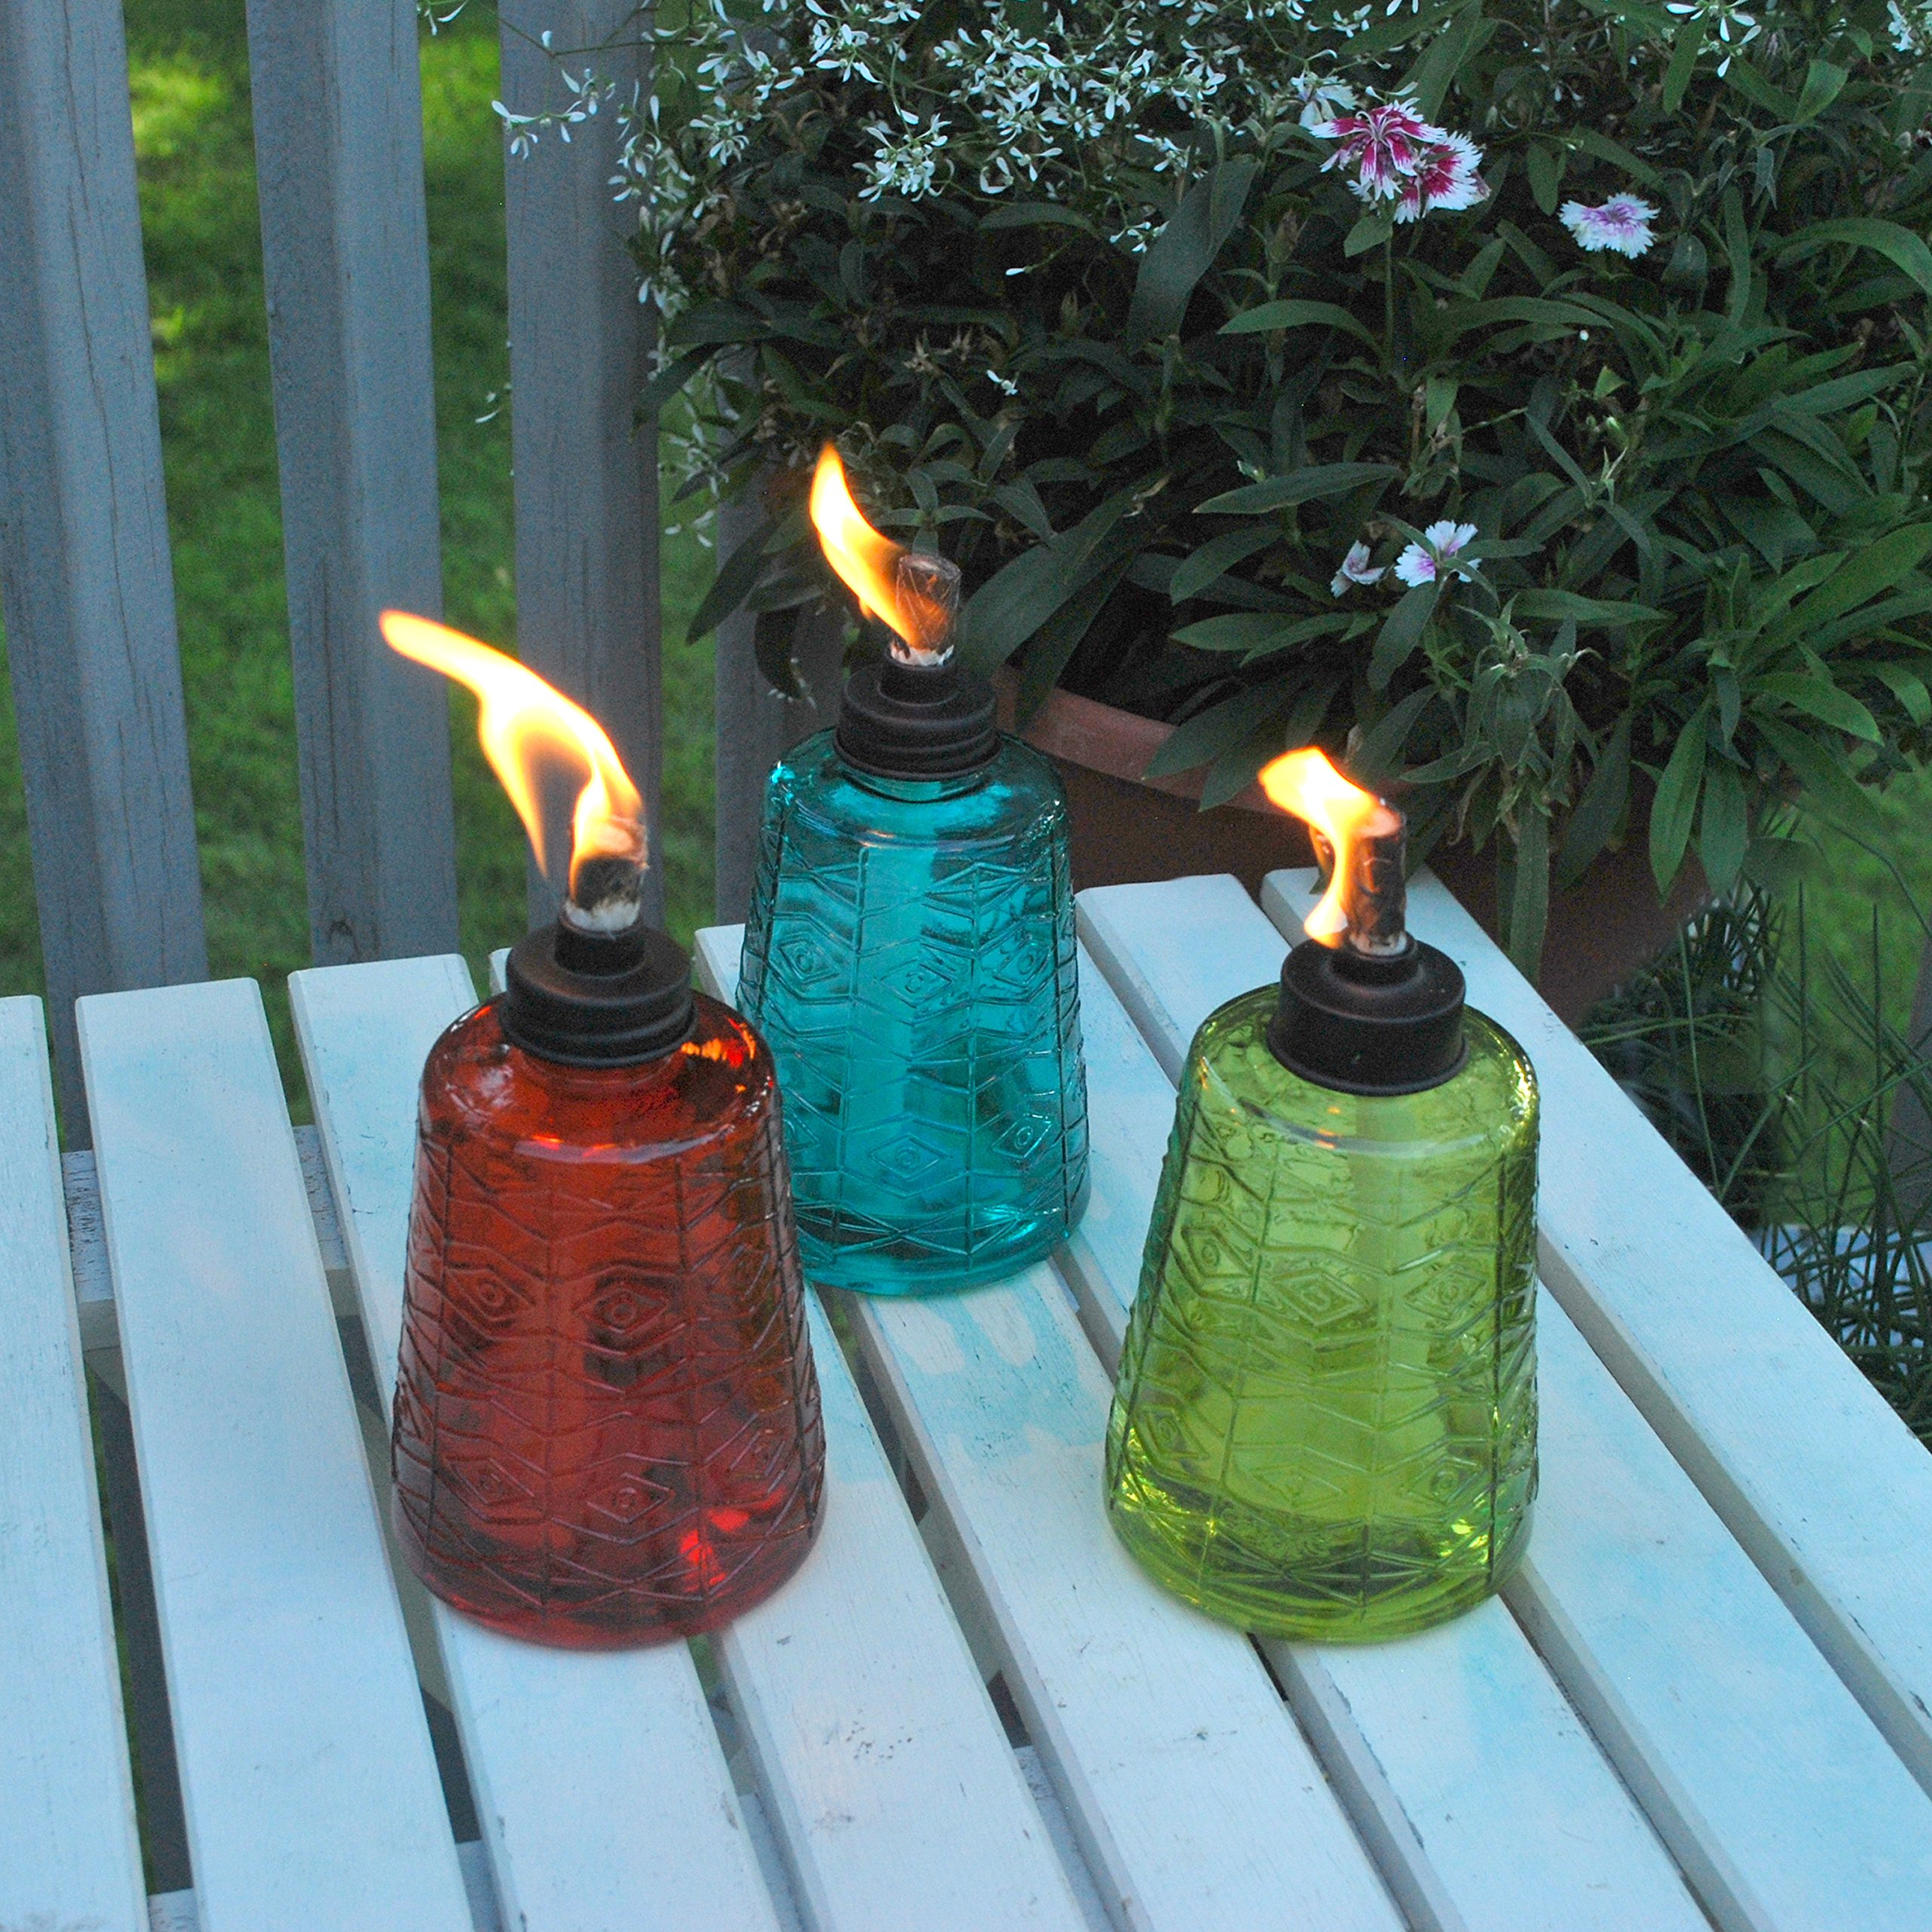 TIKI 6-Inch Molded Glass Table Torch, Red, Green & Blue (Set of 3) by Tiki (Image #3)